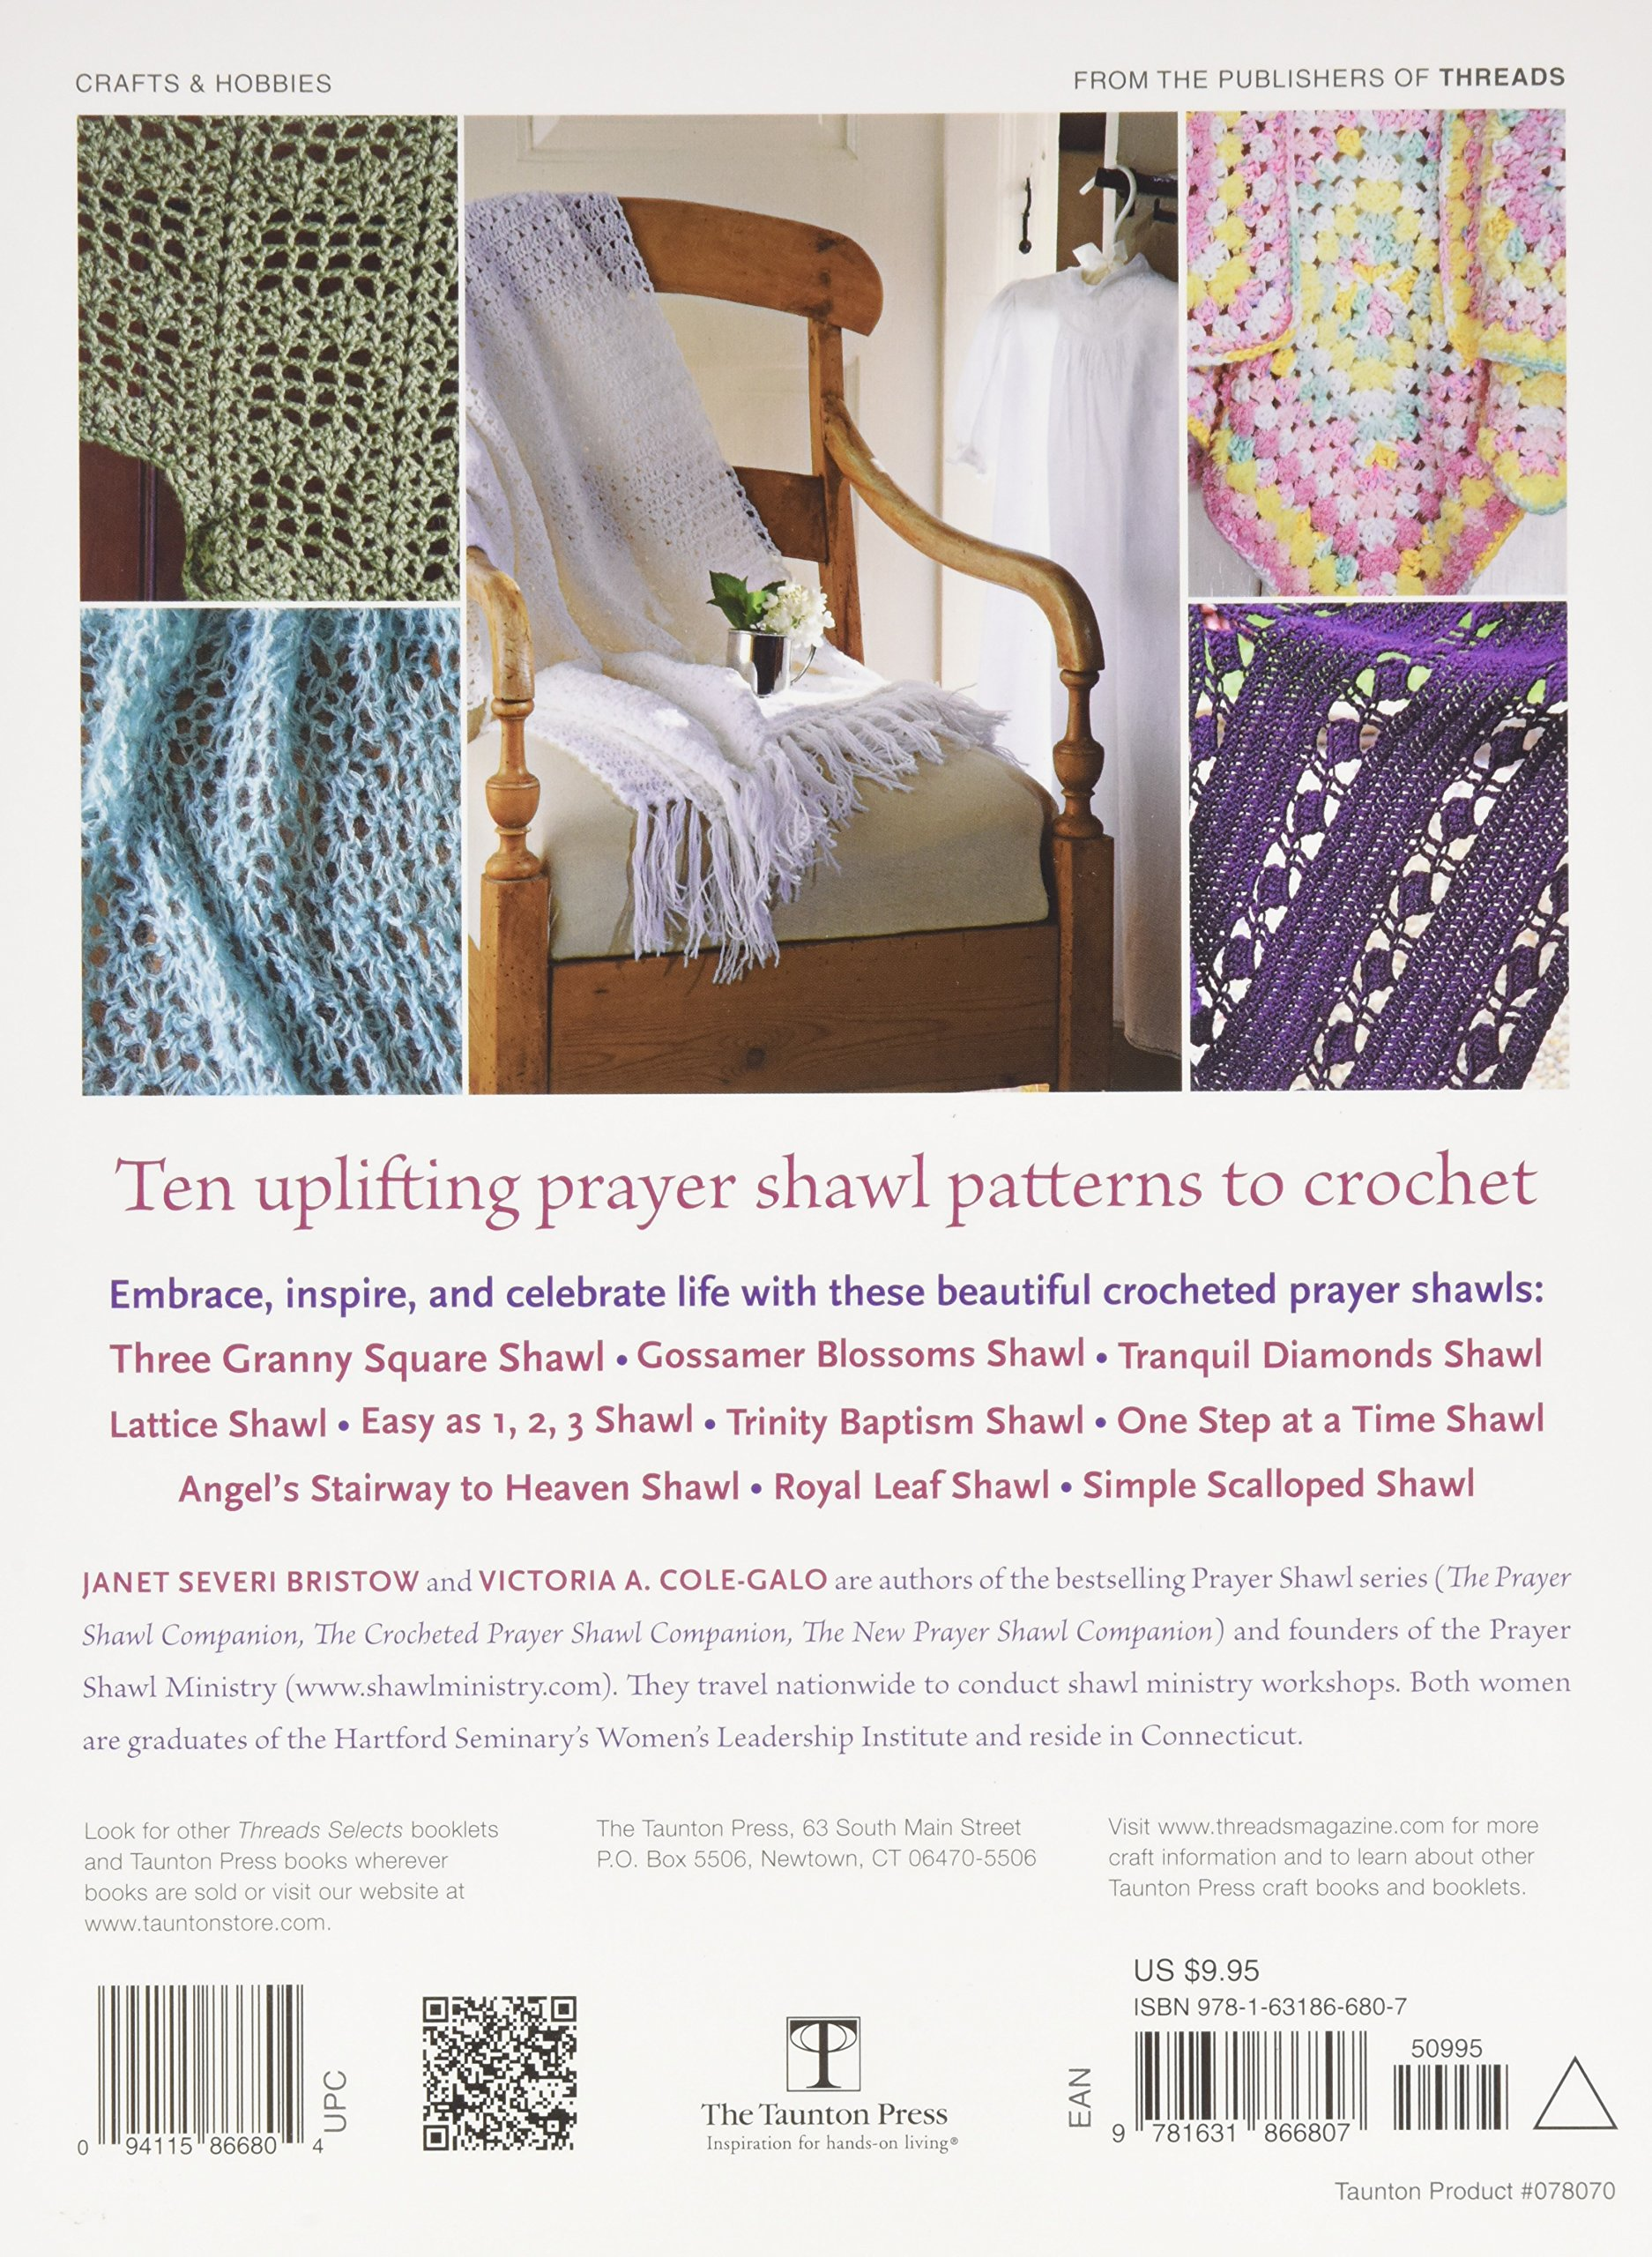 More Crocheted Prayer Shawls: 10 Patterns to Make and Share: Janet Severi Bristow, Victoria A. Cole-Galo: 9781631866807: Amazon.com: Books